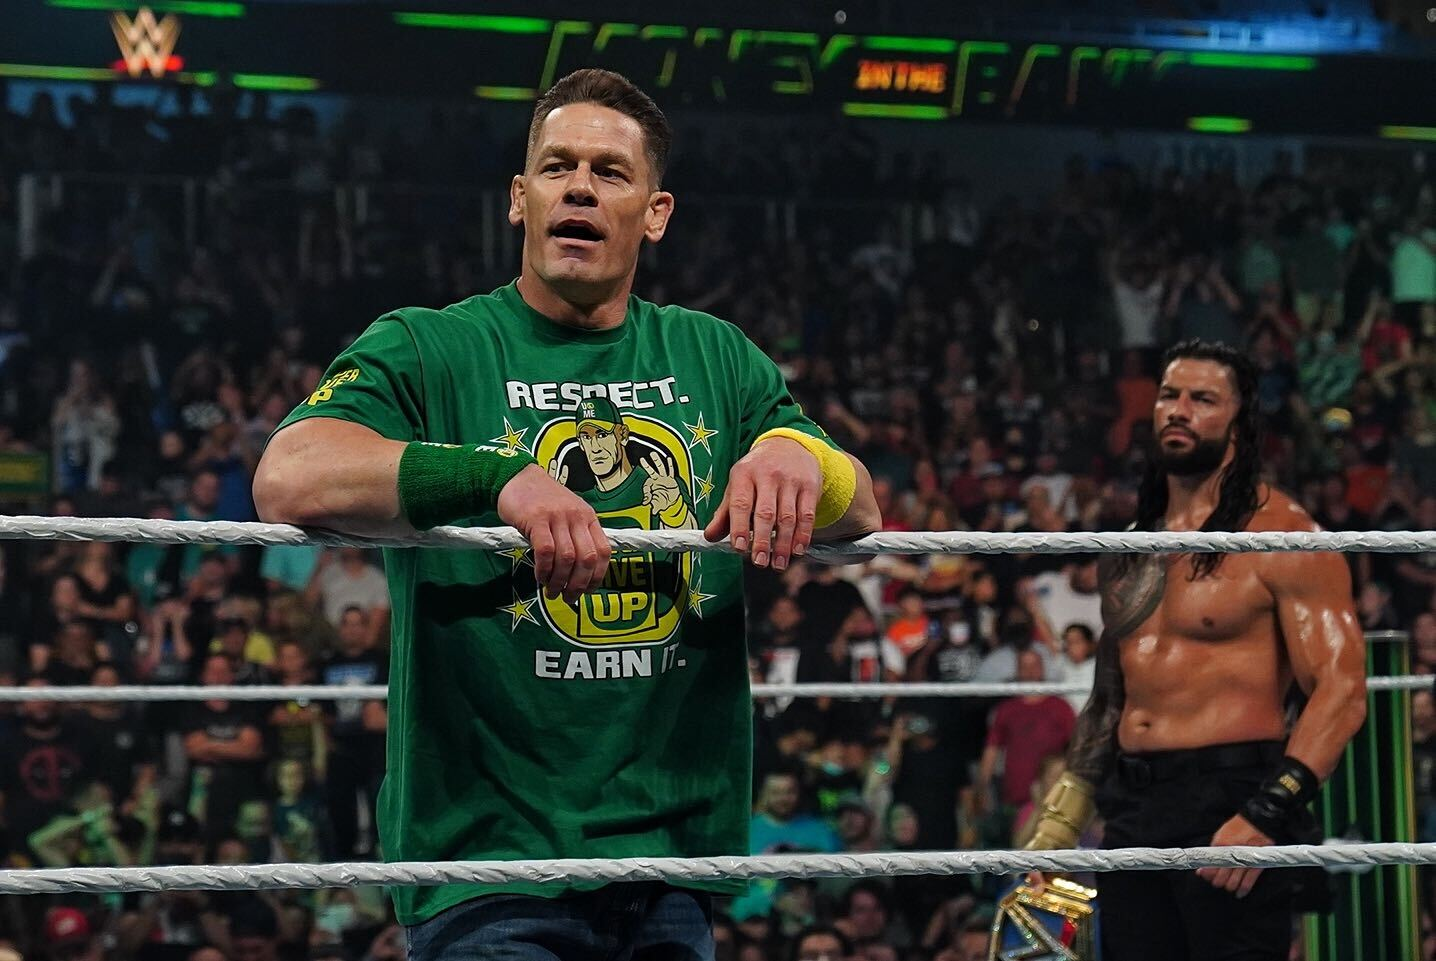 WWE Money In The Bank 2021: John Cena Returns To Confront Roman Reigns 86